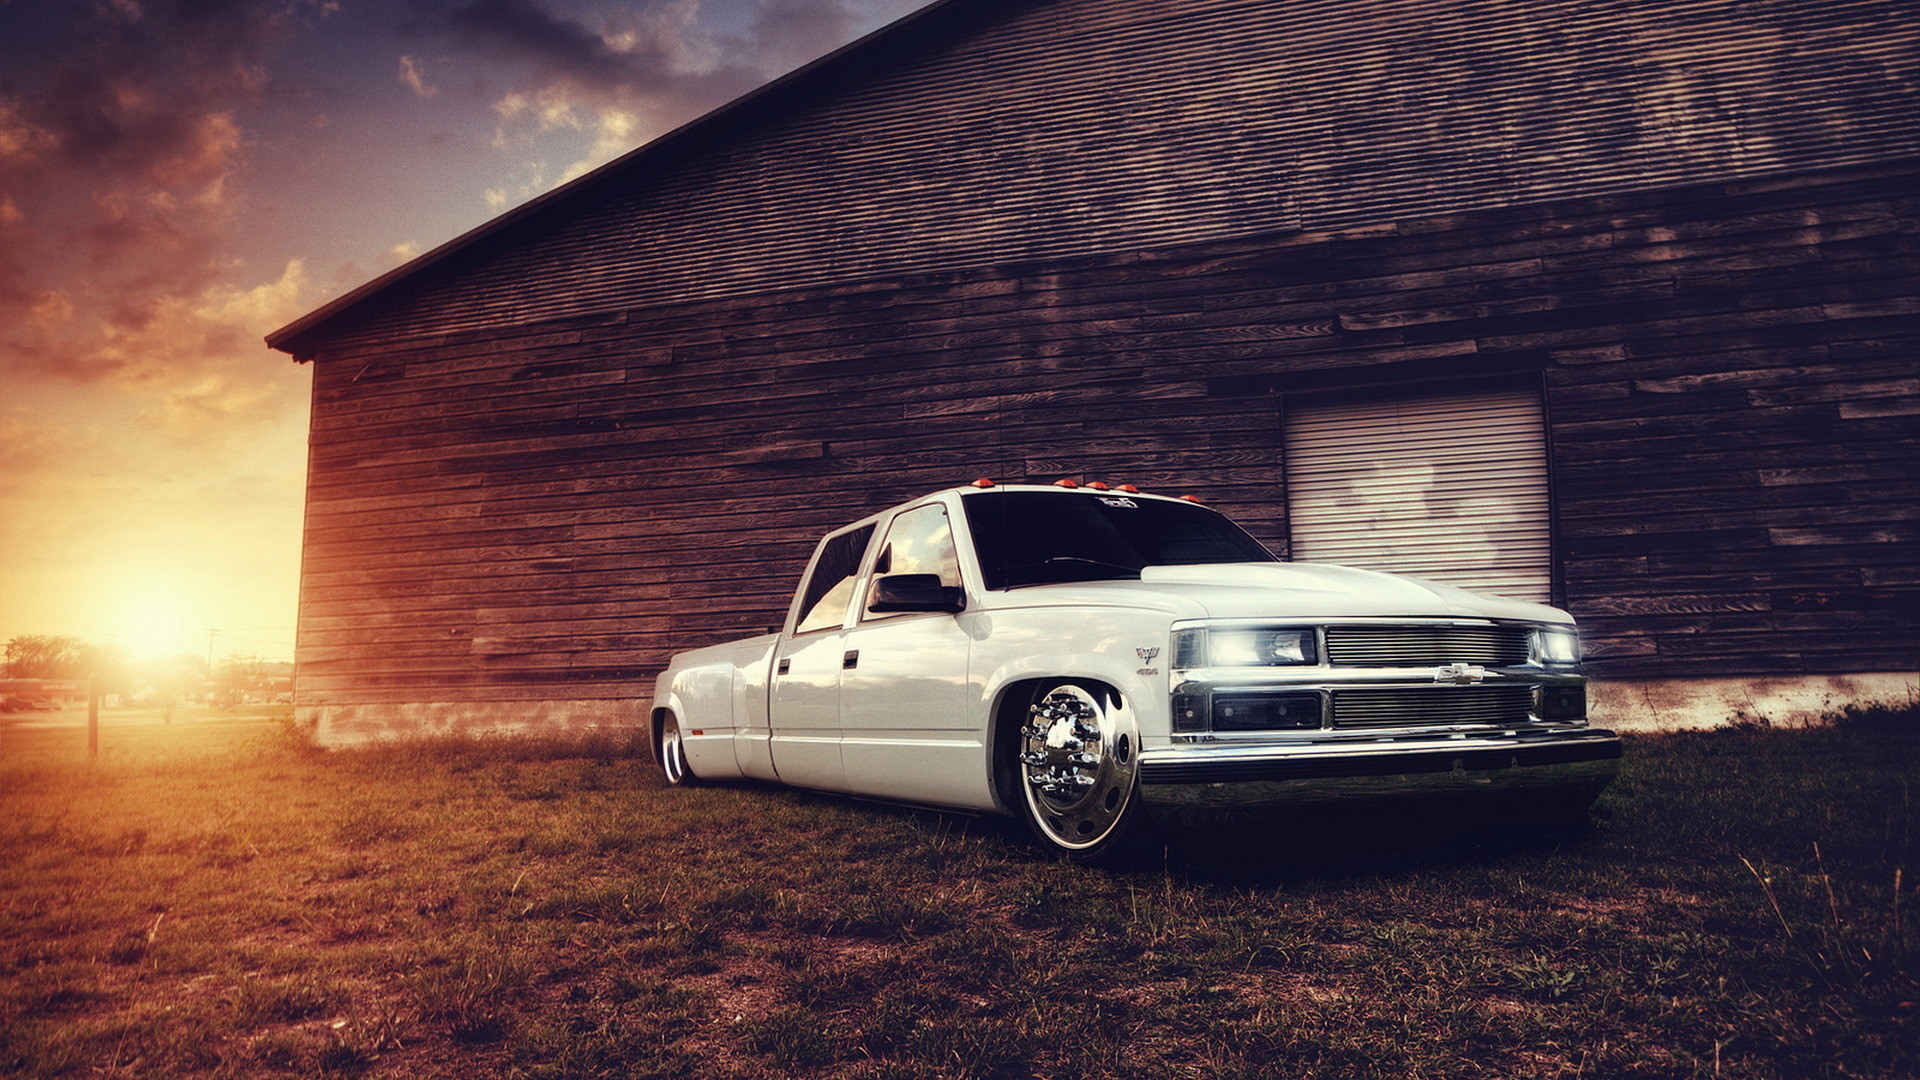 1920x1080 Pictures Lowrider Chevy Truck Classic Hot Rod